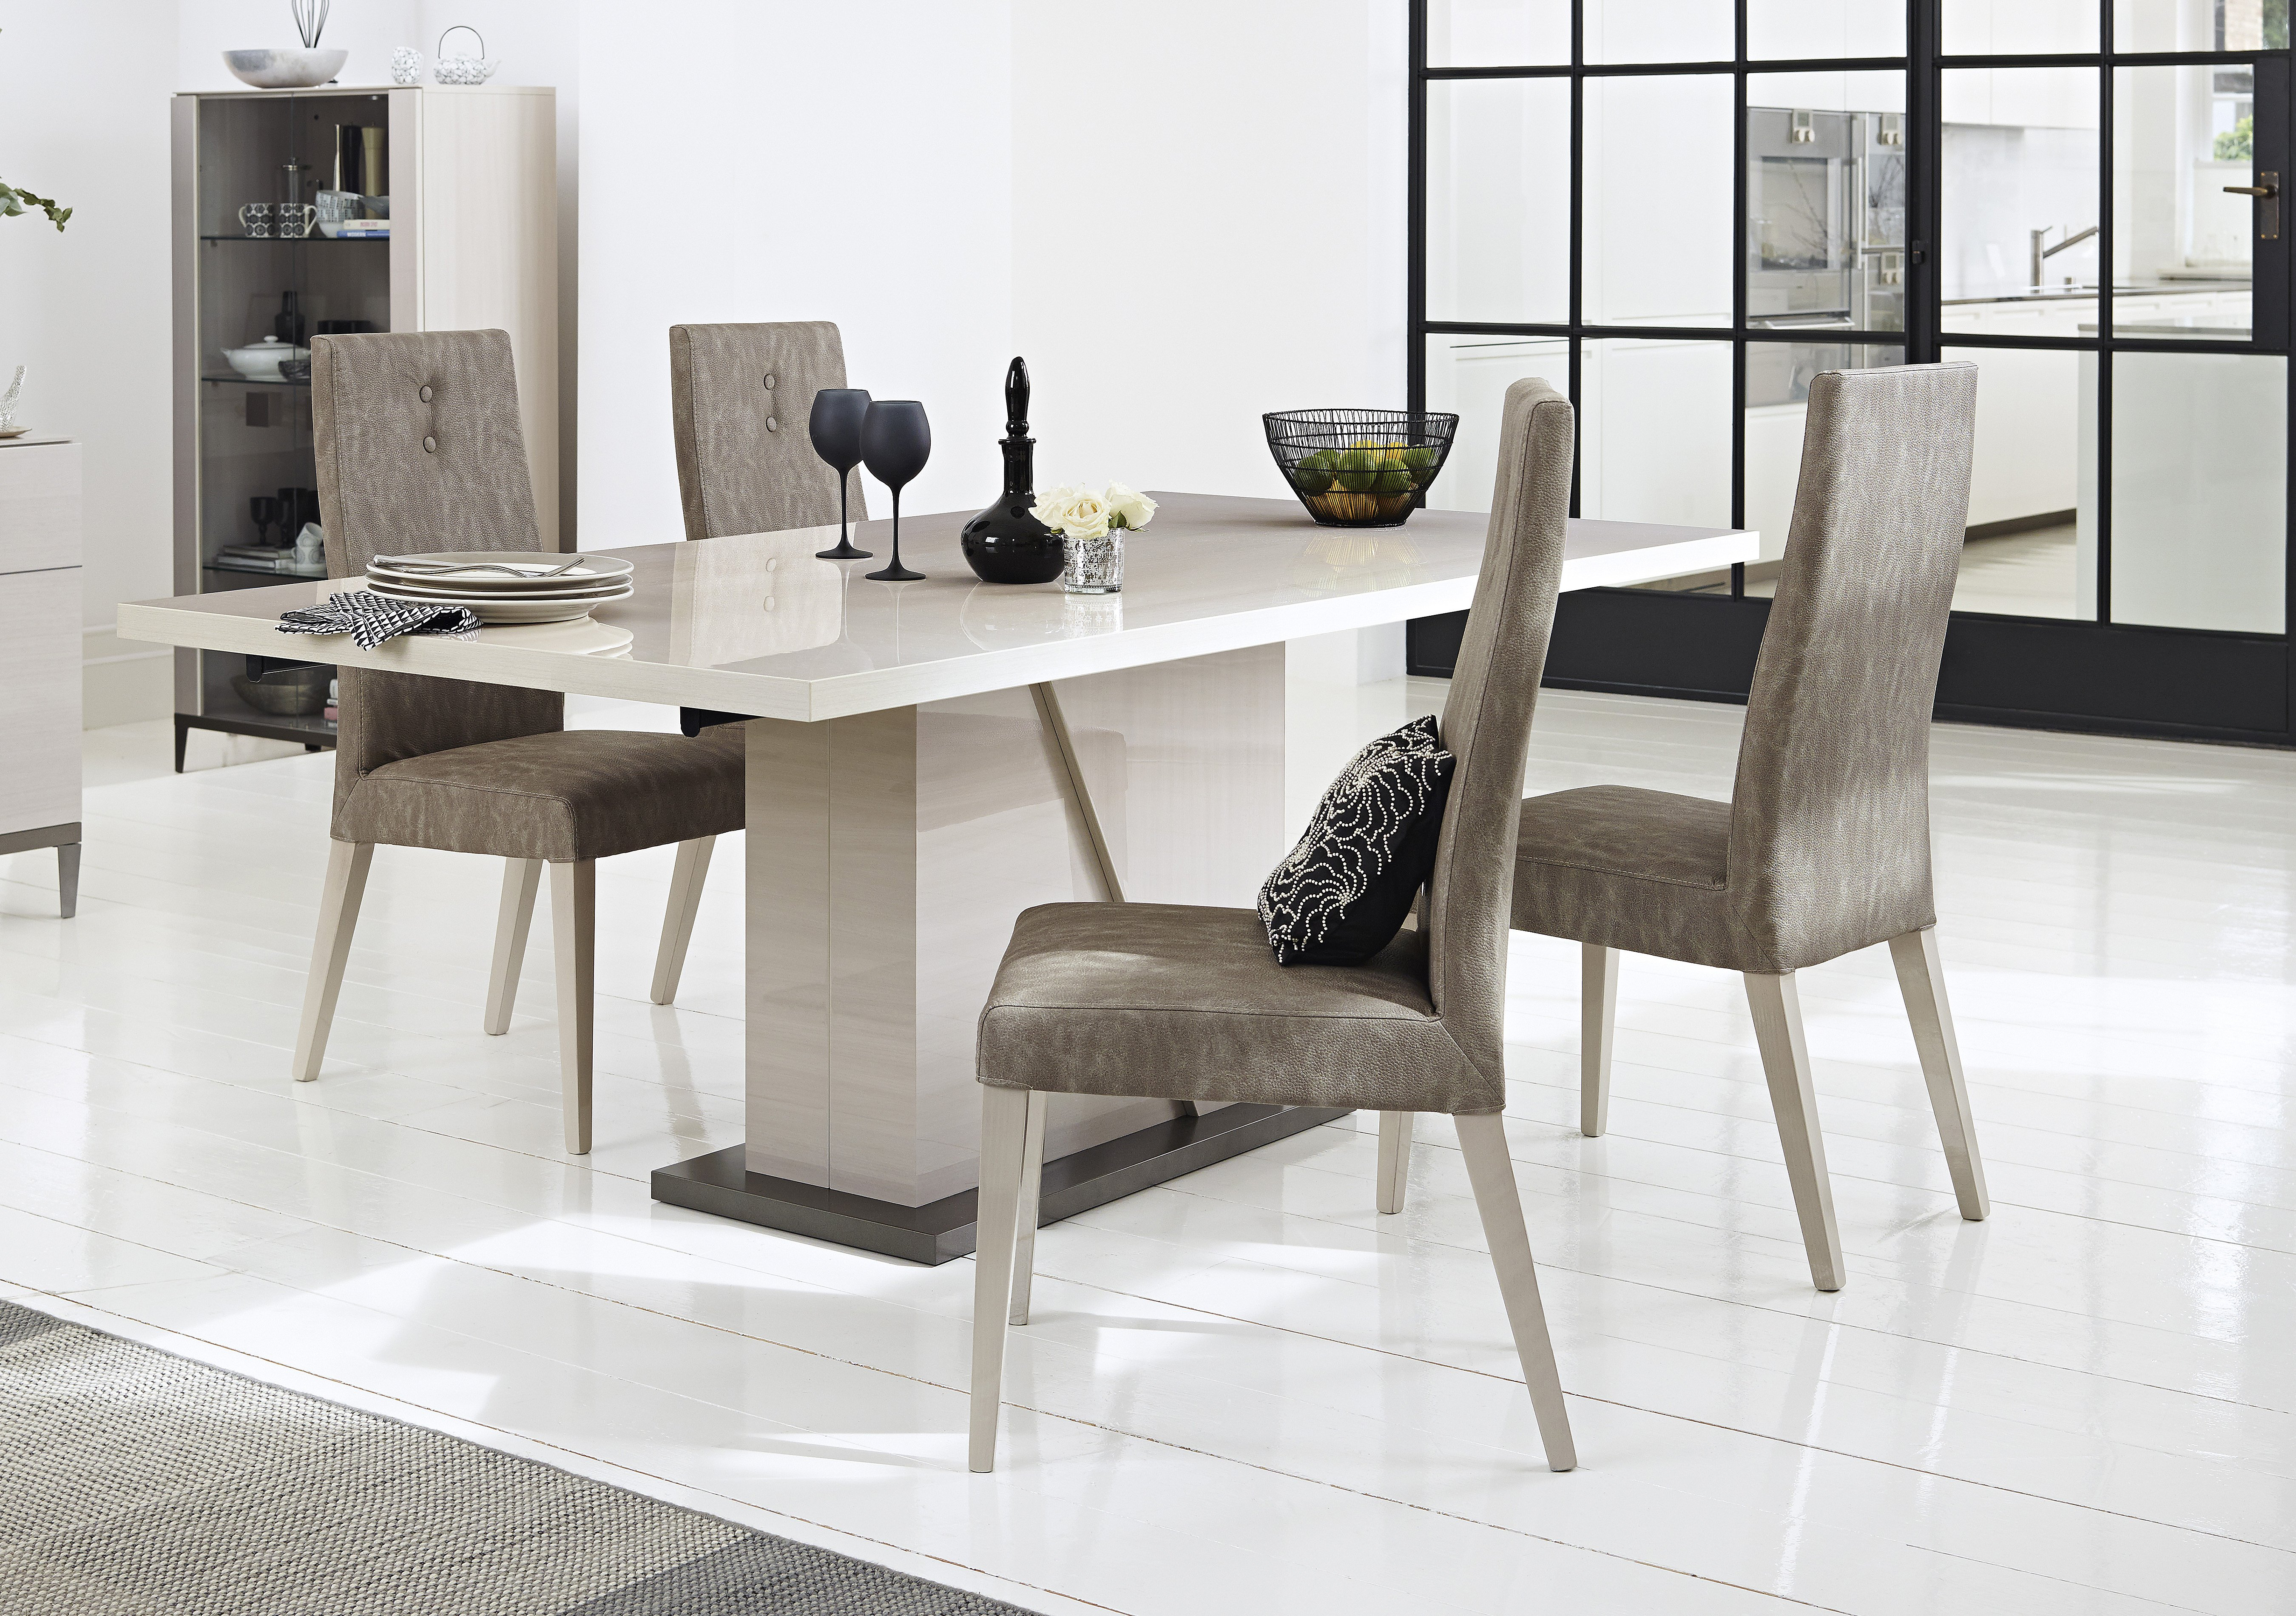 Alpine Dining Table and 4 Dining Chairs ALF Furniture Village